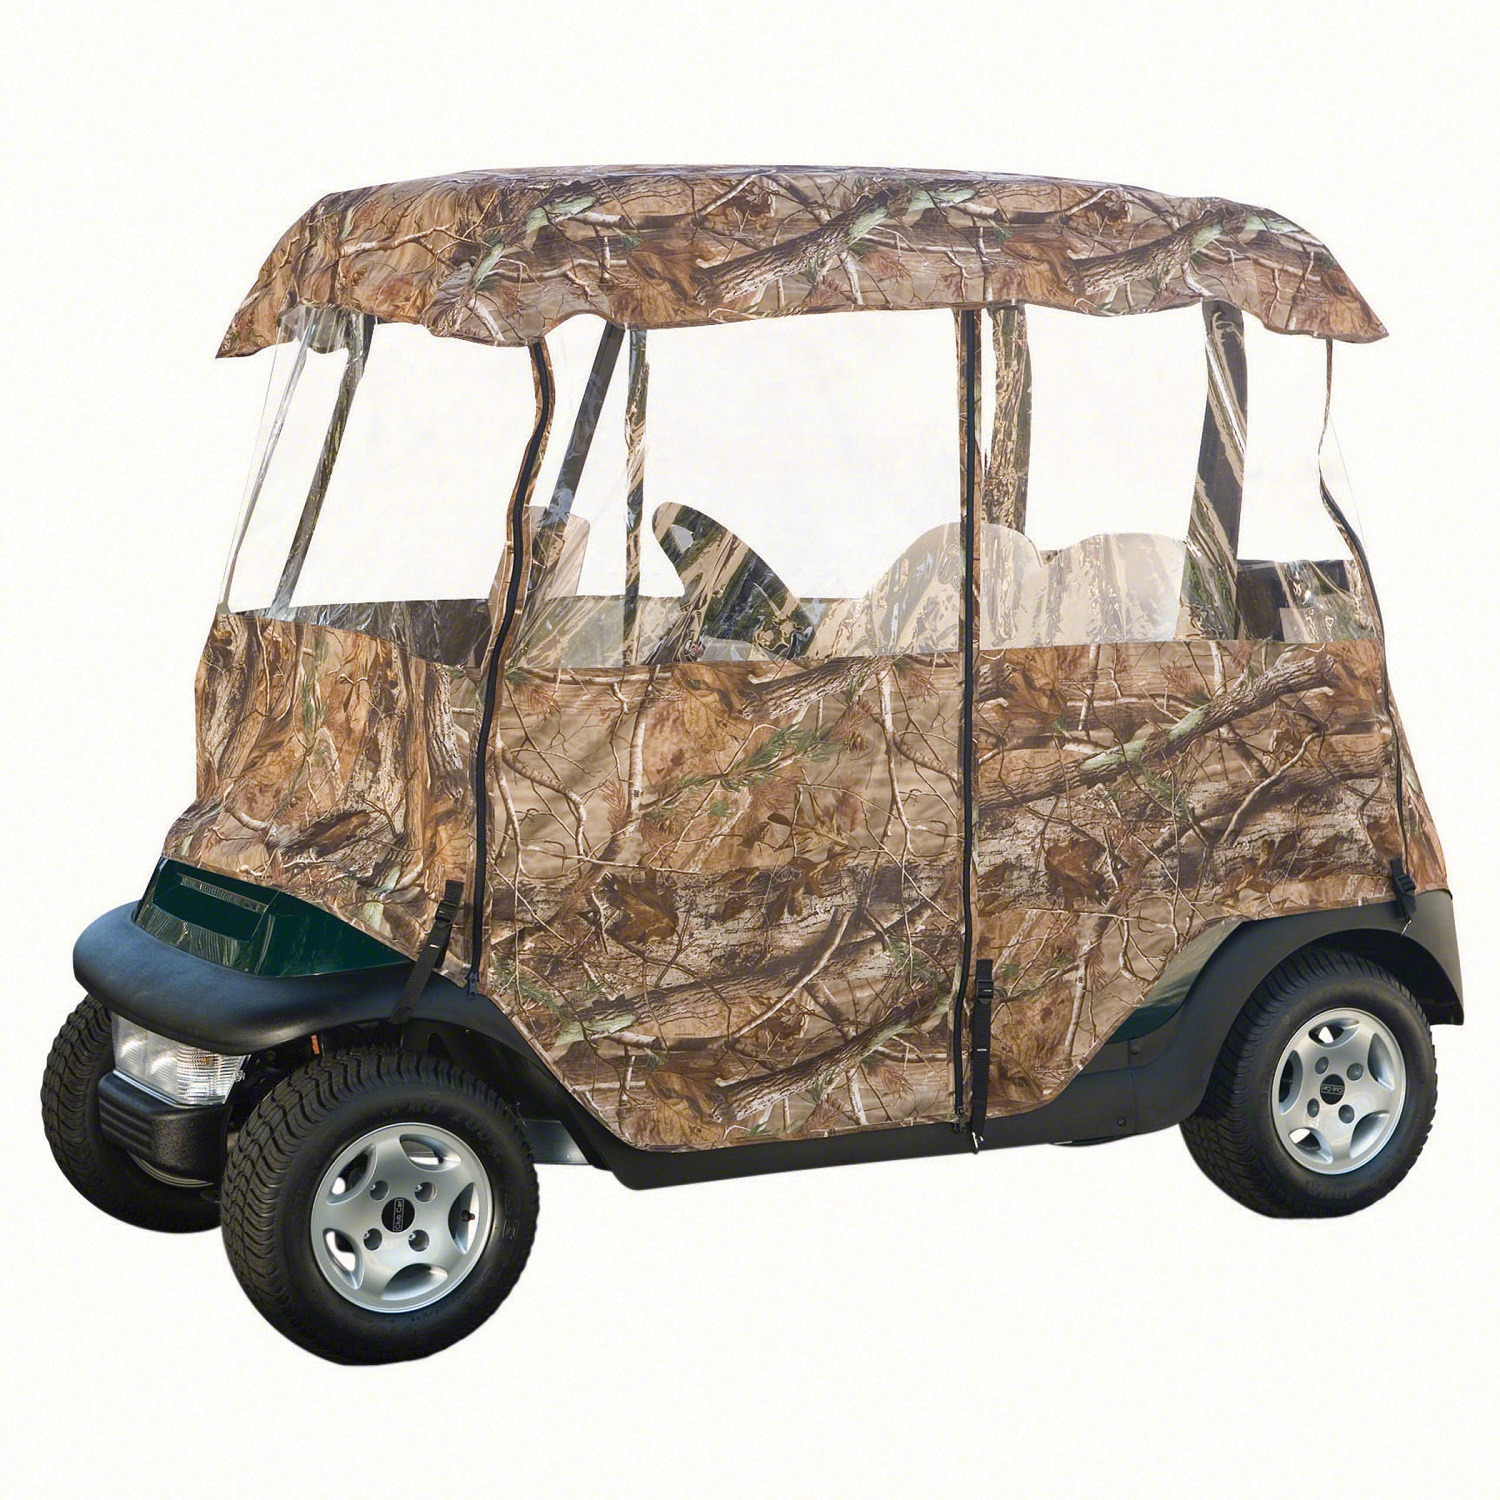 Classic Accessories Deluxe Golf Cart Enclosure Realtree AP